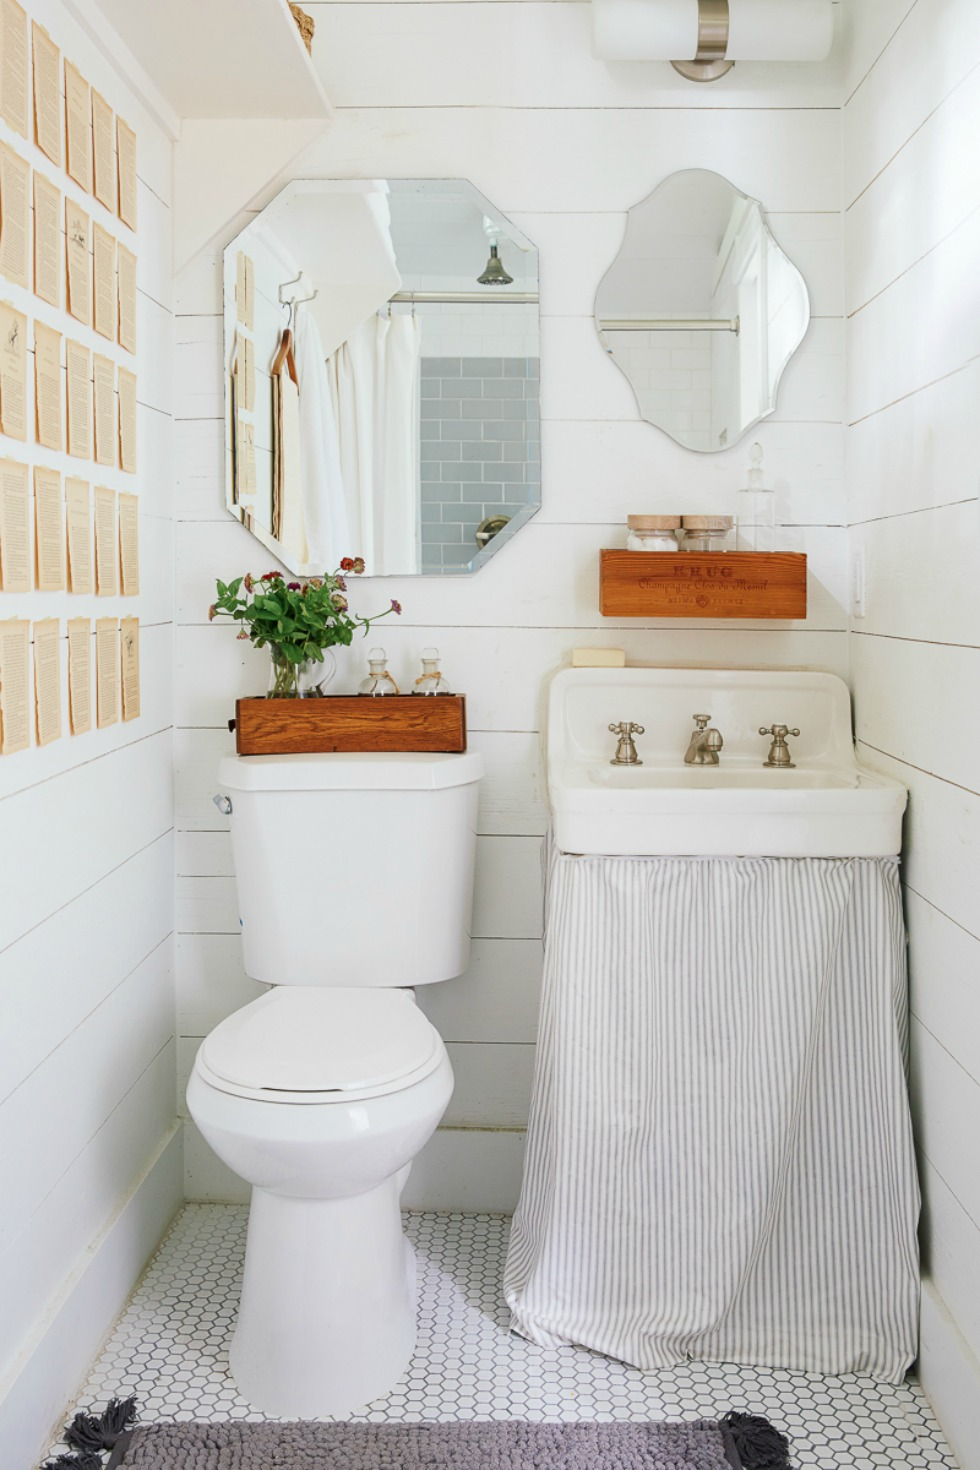 How to decorate bathroom also add bathroom tile ideas also add bathroom renovations also add cottage bathroom ideas also add bathroom decorating themes